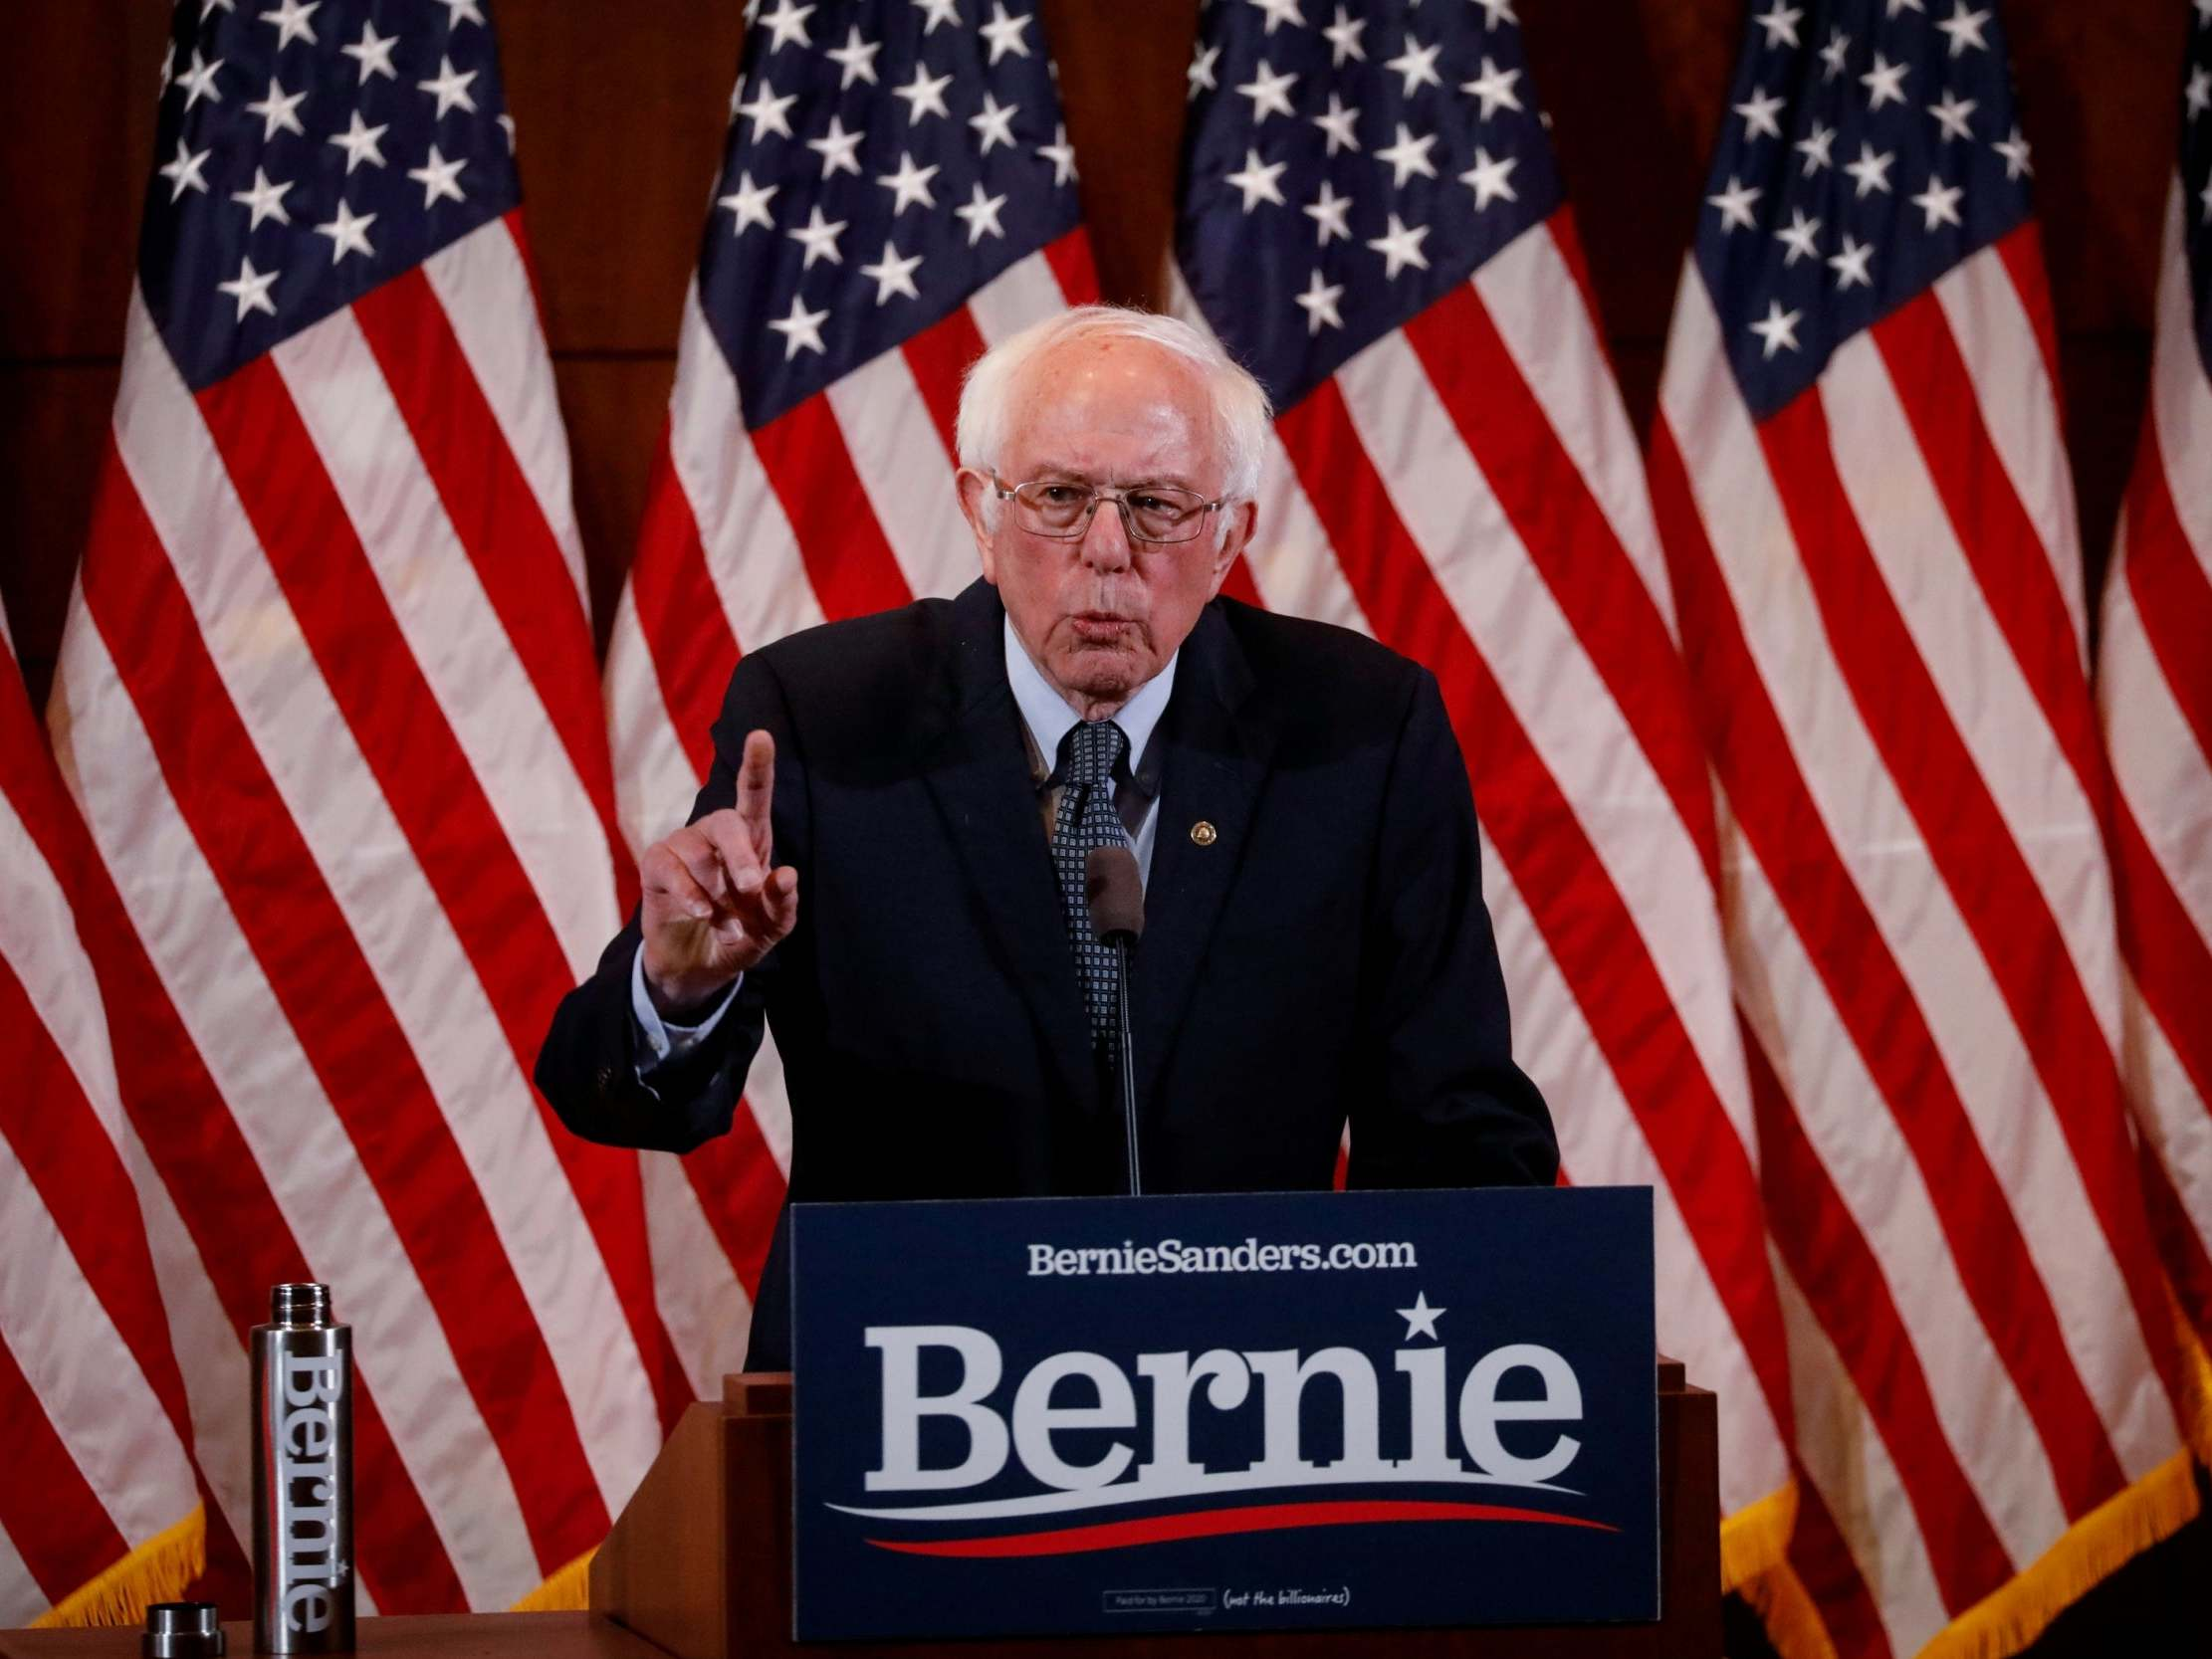 State of the Union: Bernie Sanders says Trump lacked the 'courage' to mention climate change during speech